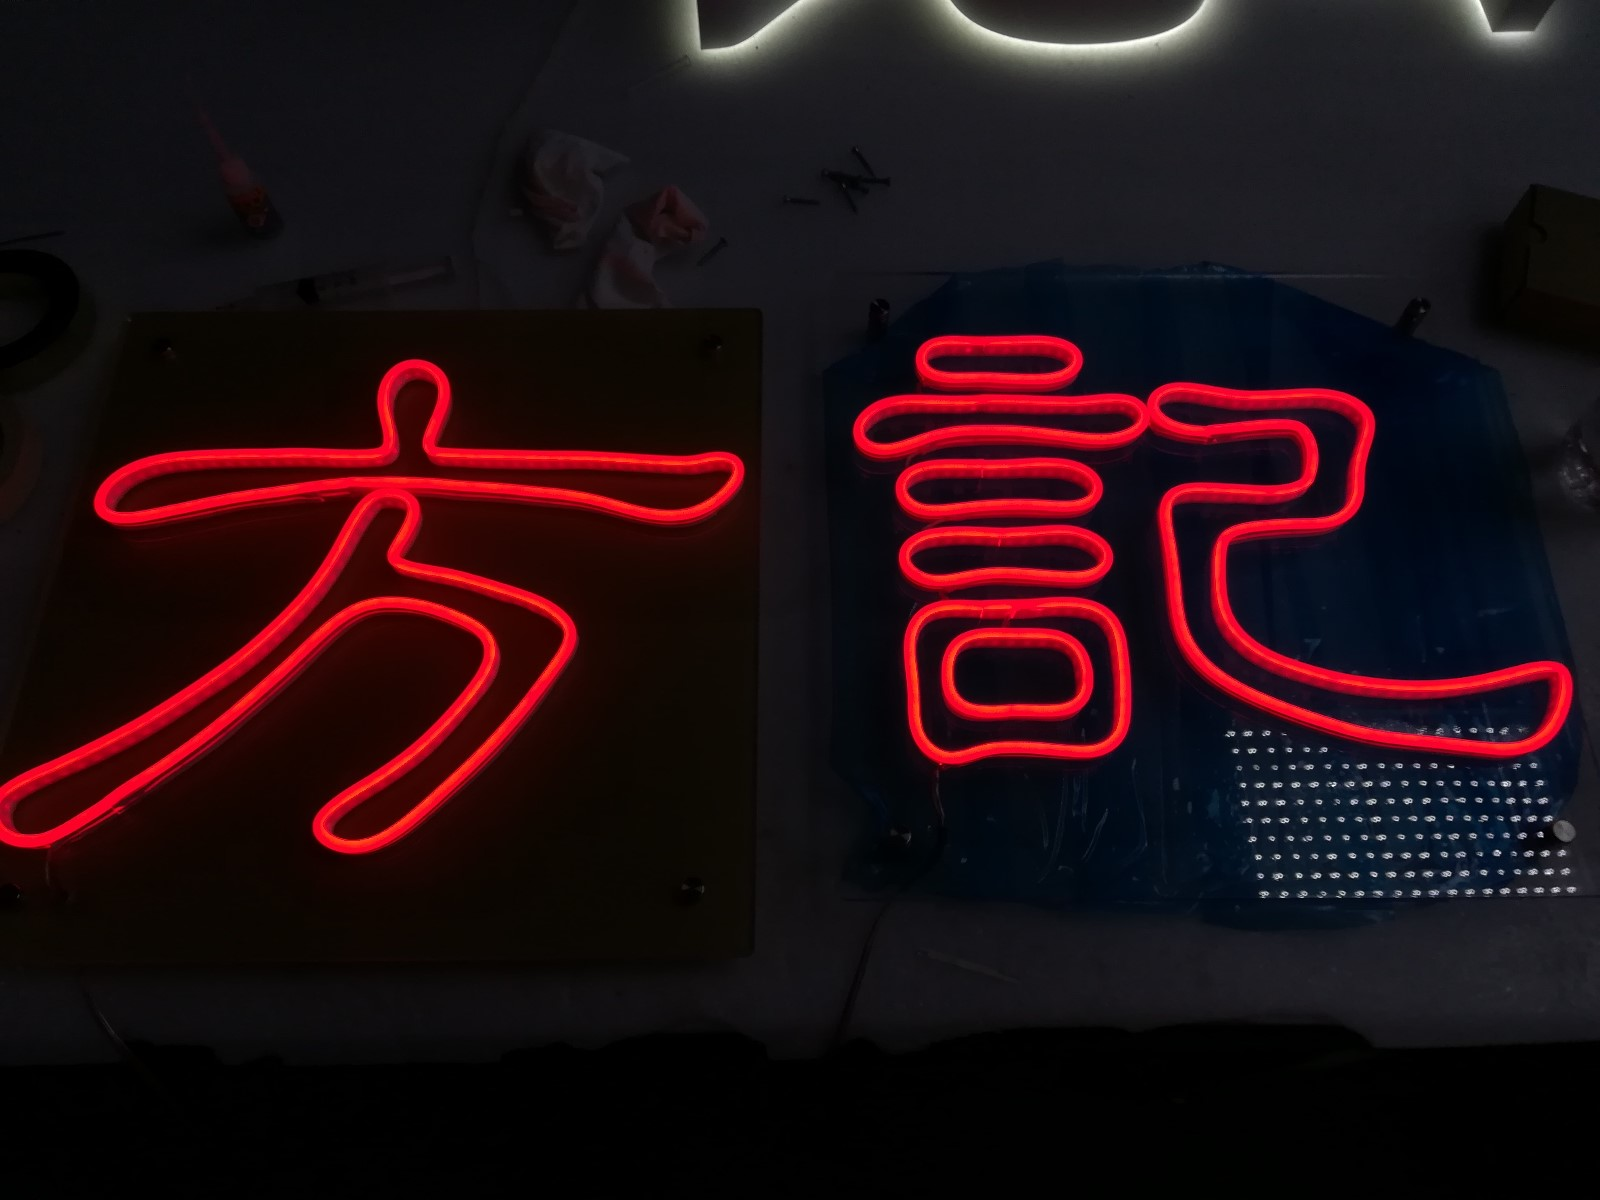 Advertising Acrylic LED Neon Signs